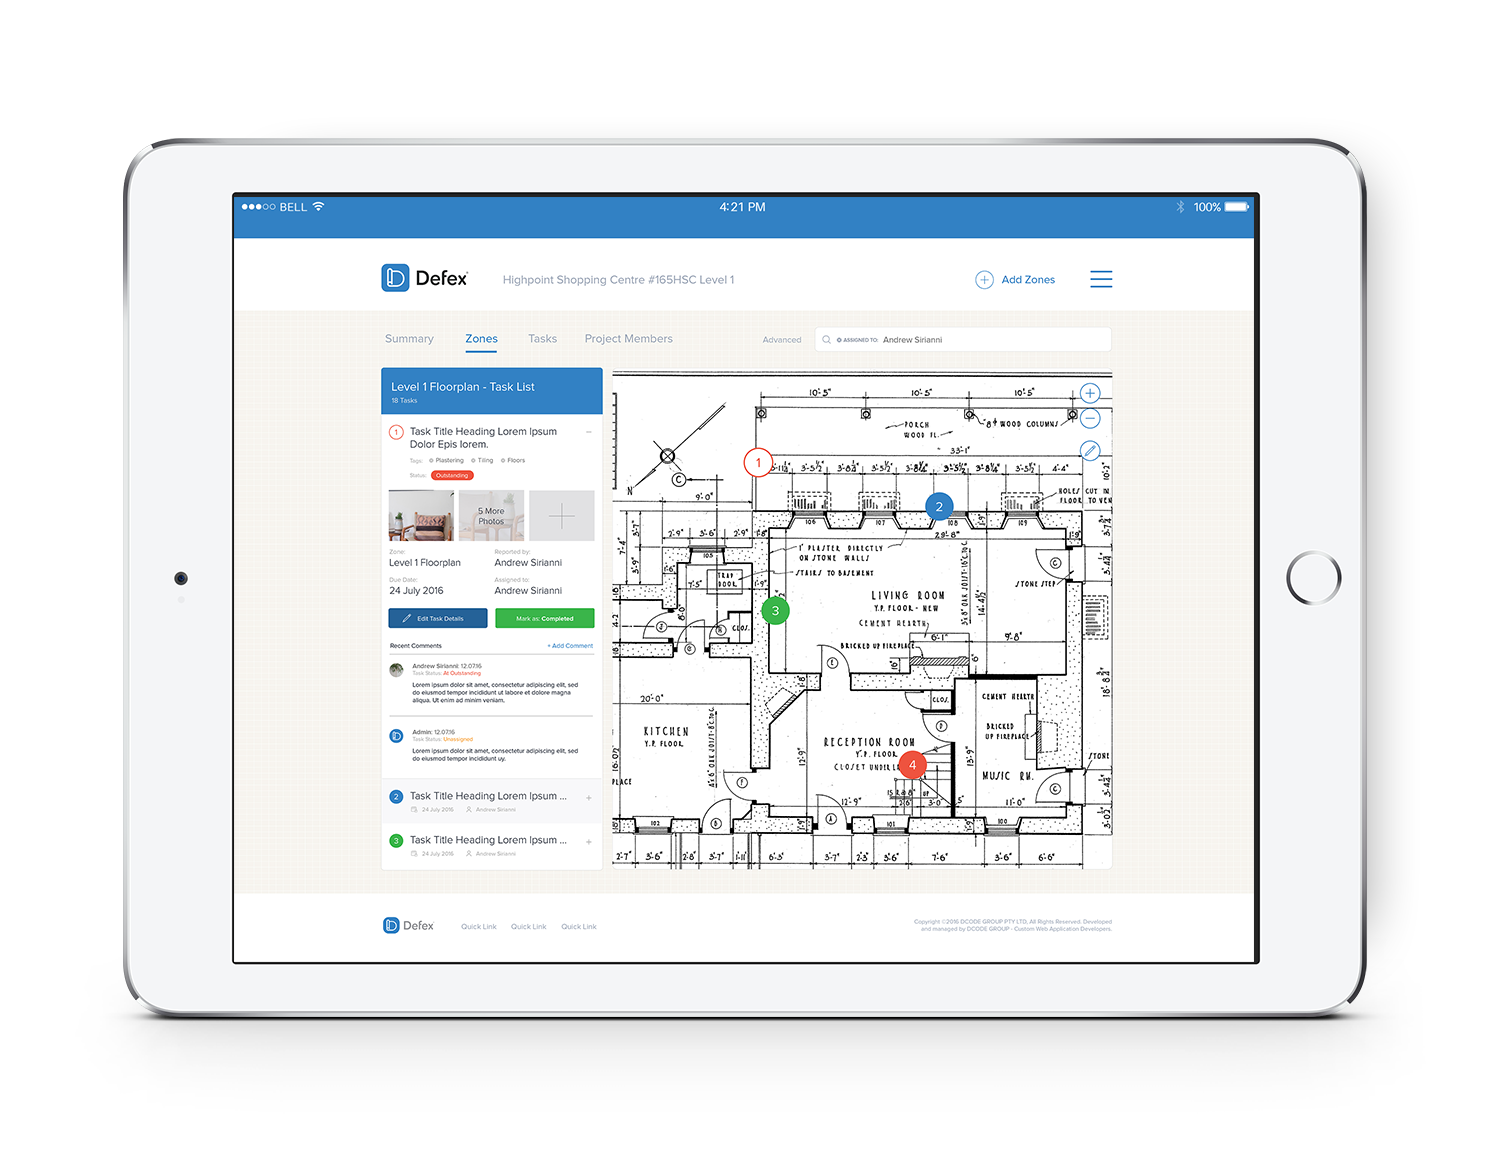 Defex is an online task-management solution compatible with Tablets and Mobile Devices